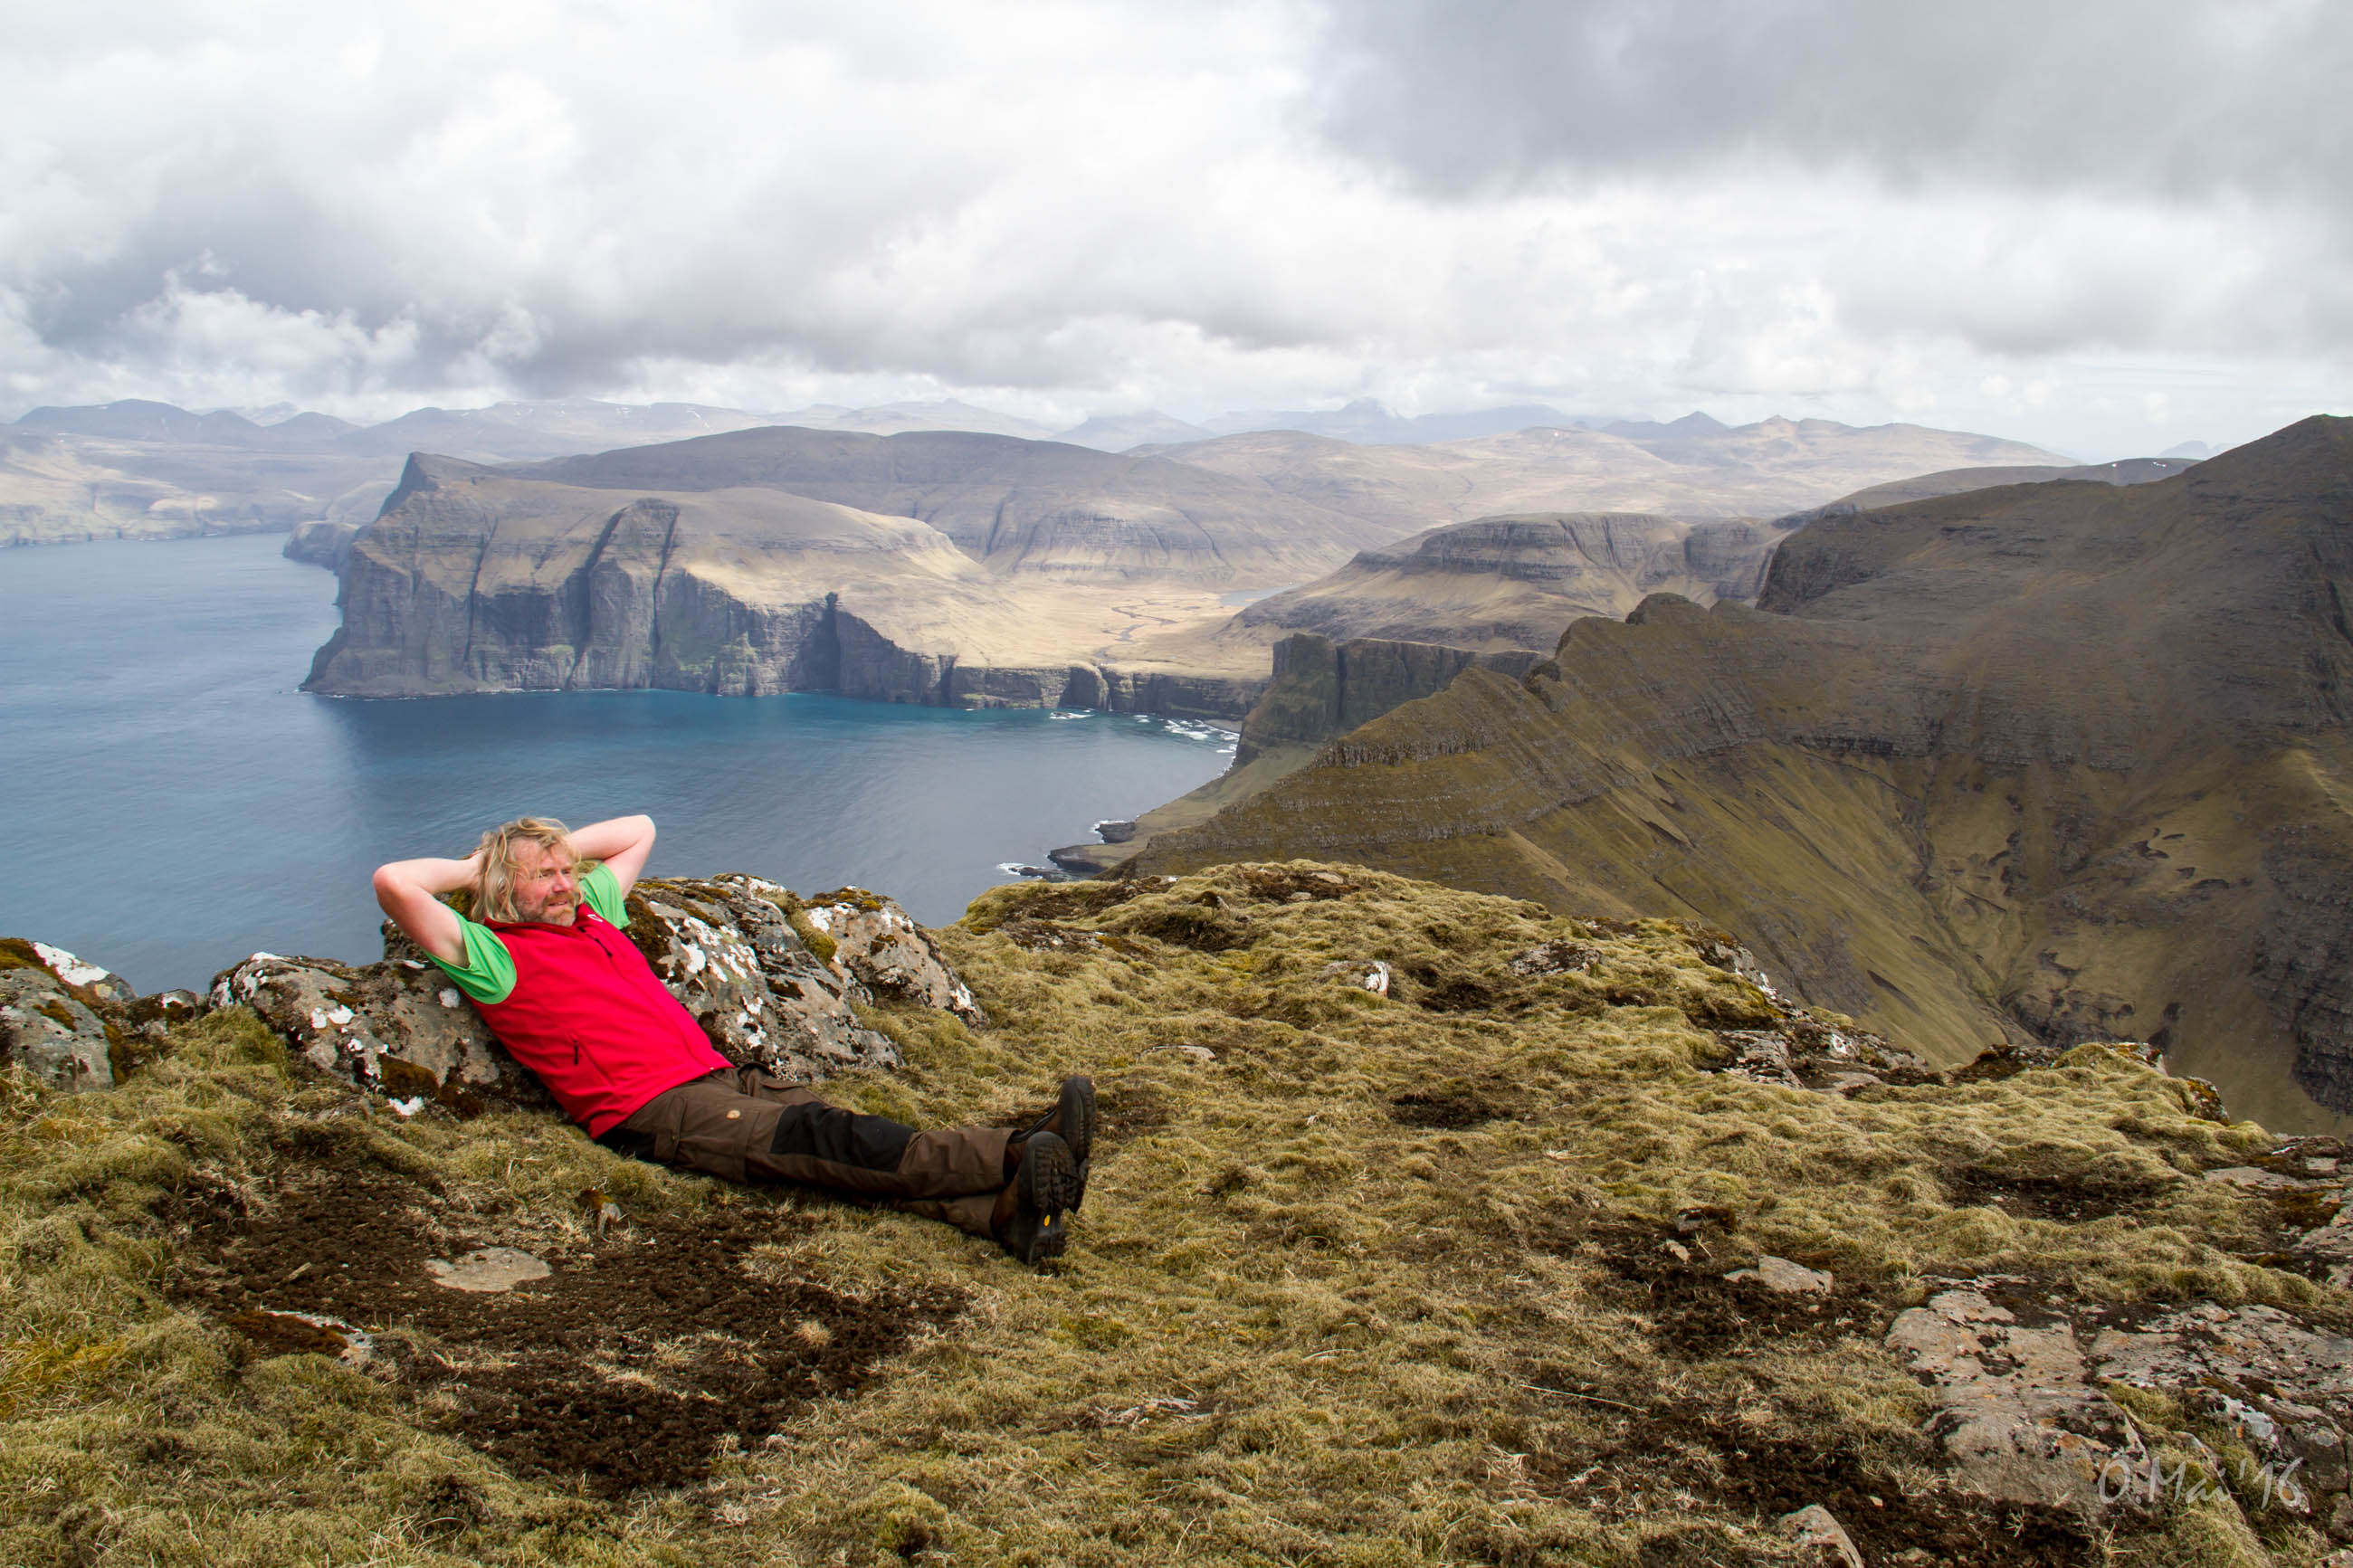 Best long distance hikes in the world - Long distance hiking in the Faroe Islands Thorsten Hoyer